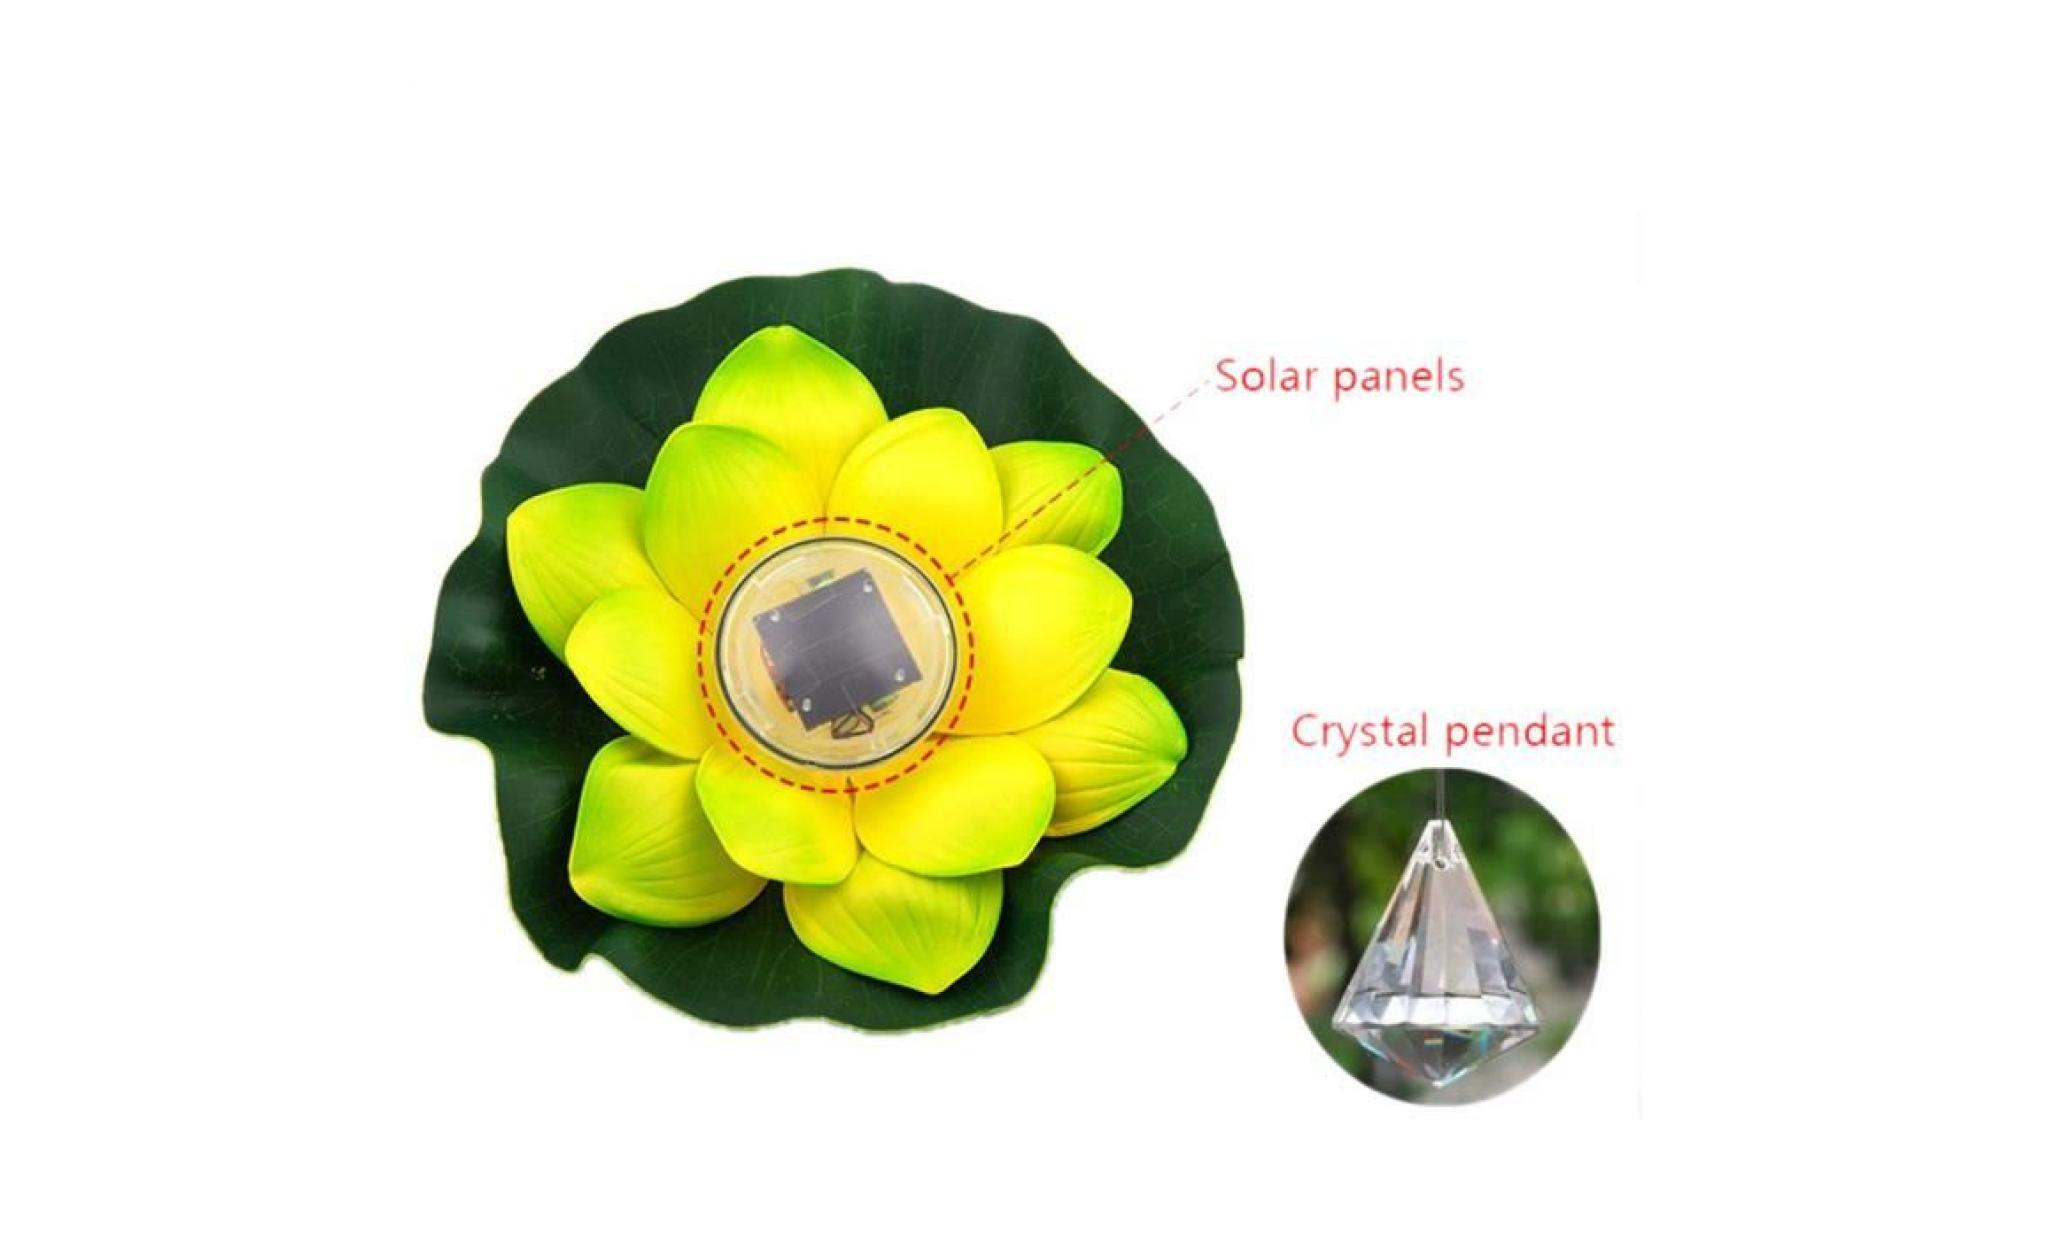 borne solaire 1 pcs solaire en plein air flottant lotus light pool pond jardin eau fleur led lampe #si 254 pas cher